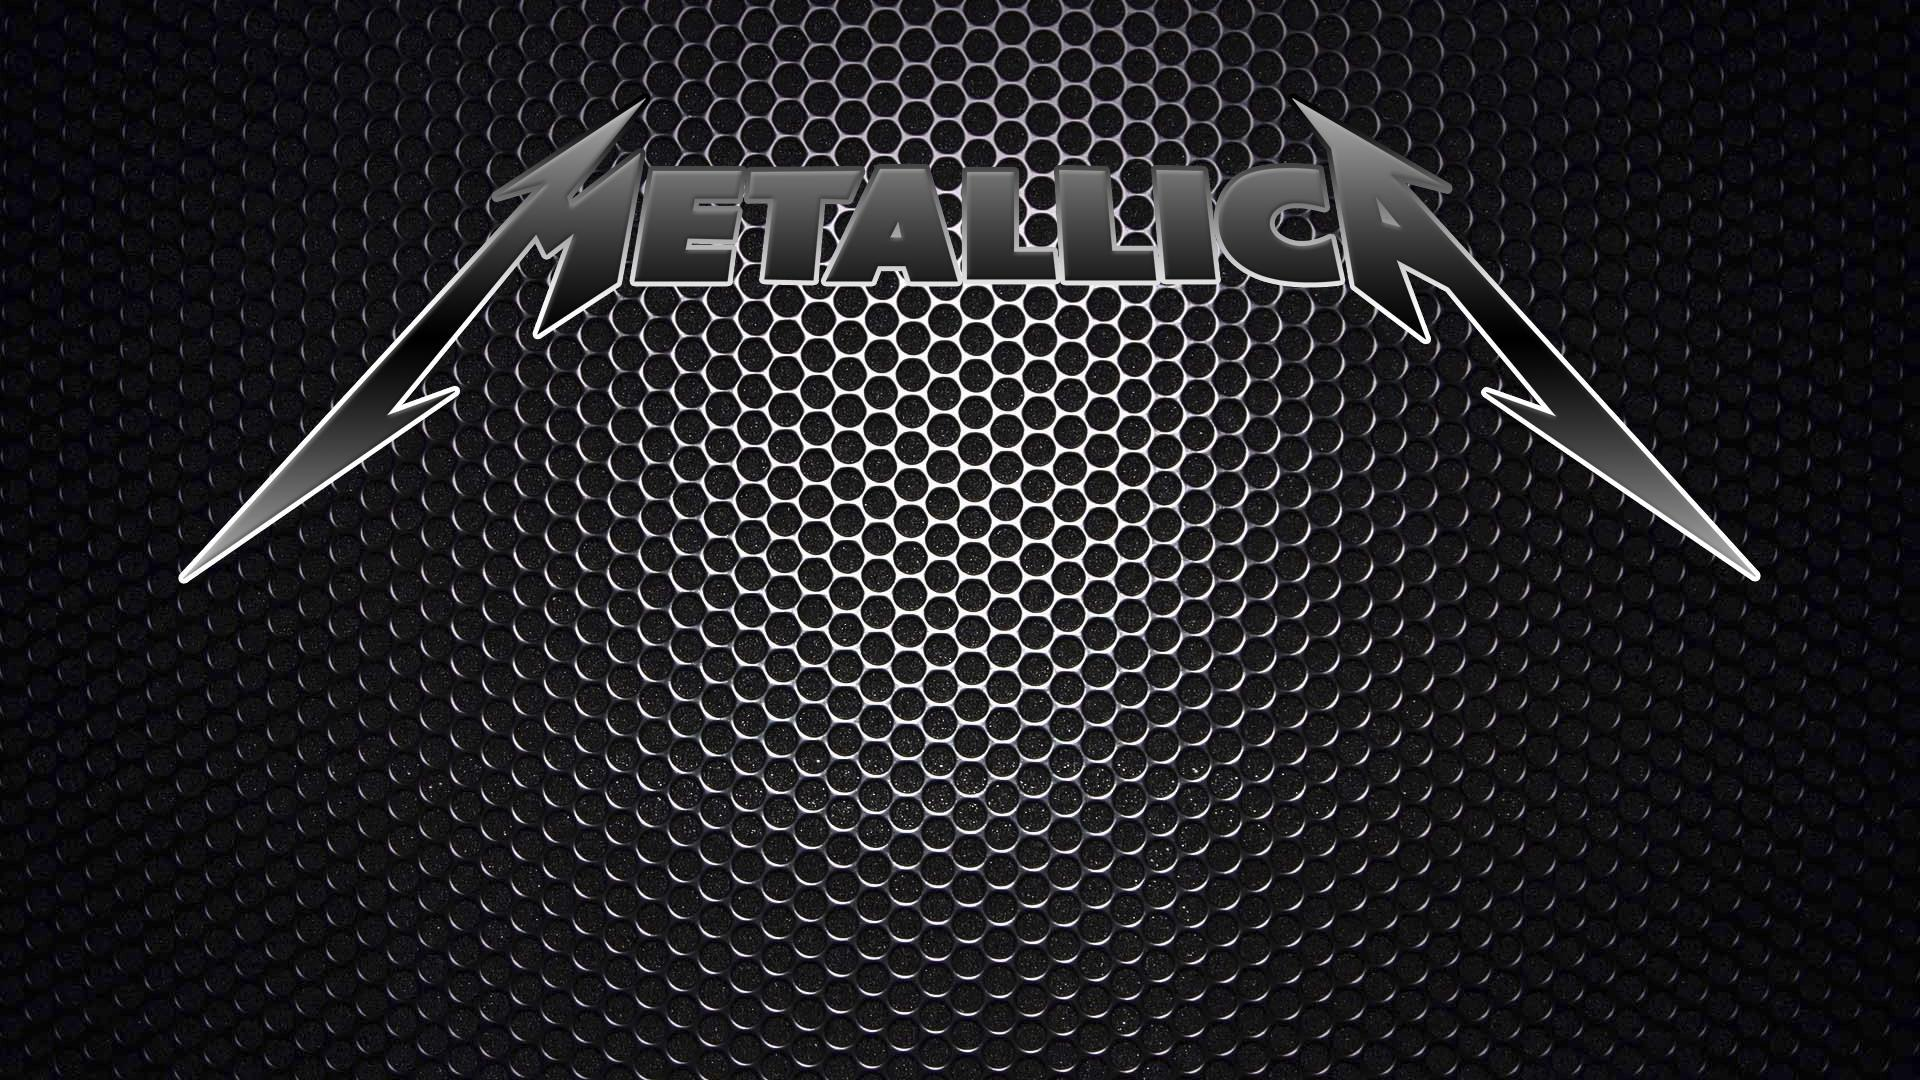 metallica lighting logo wallpaper - photo #15